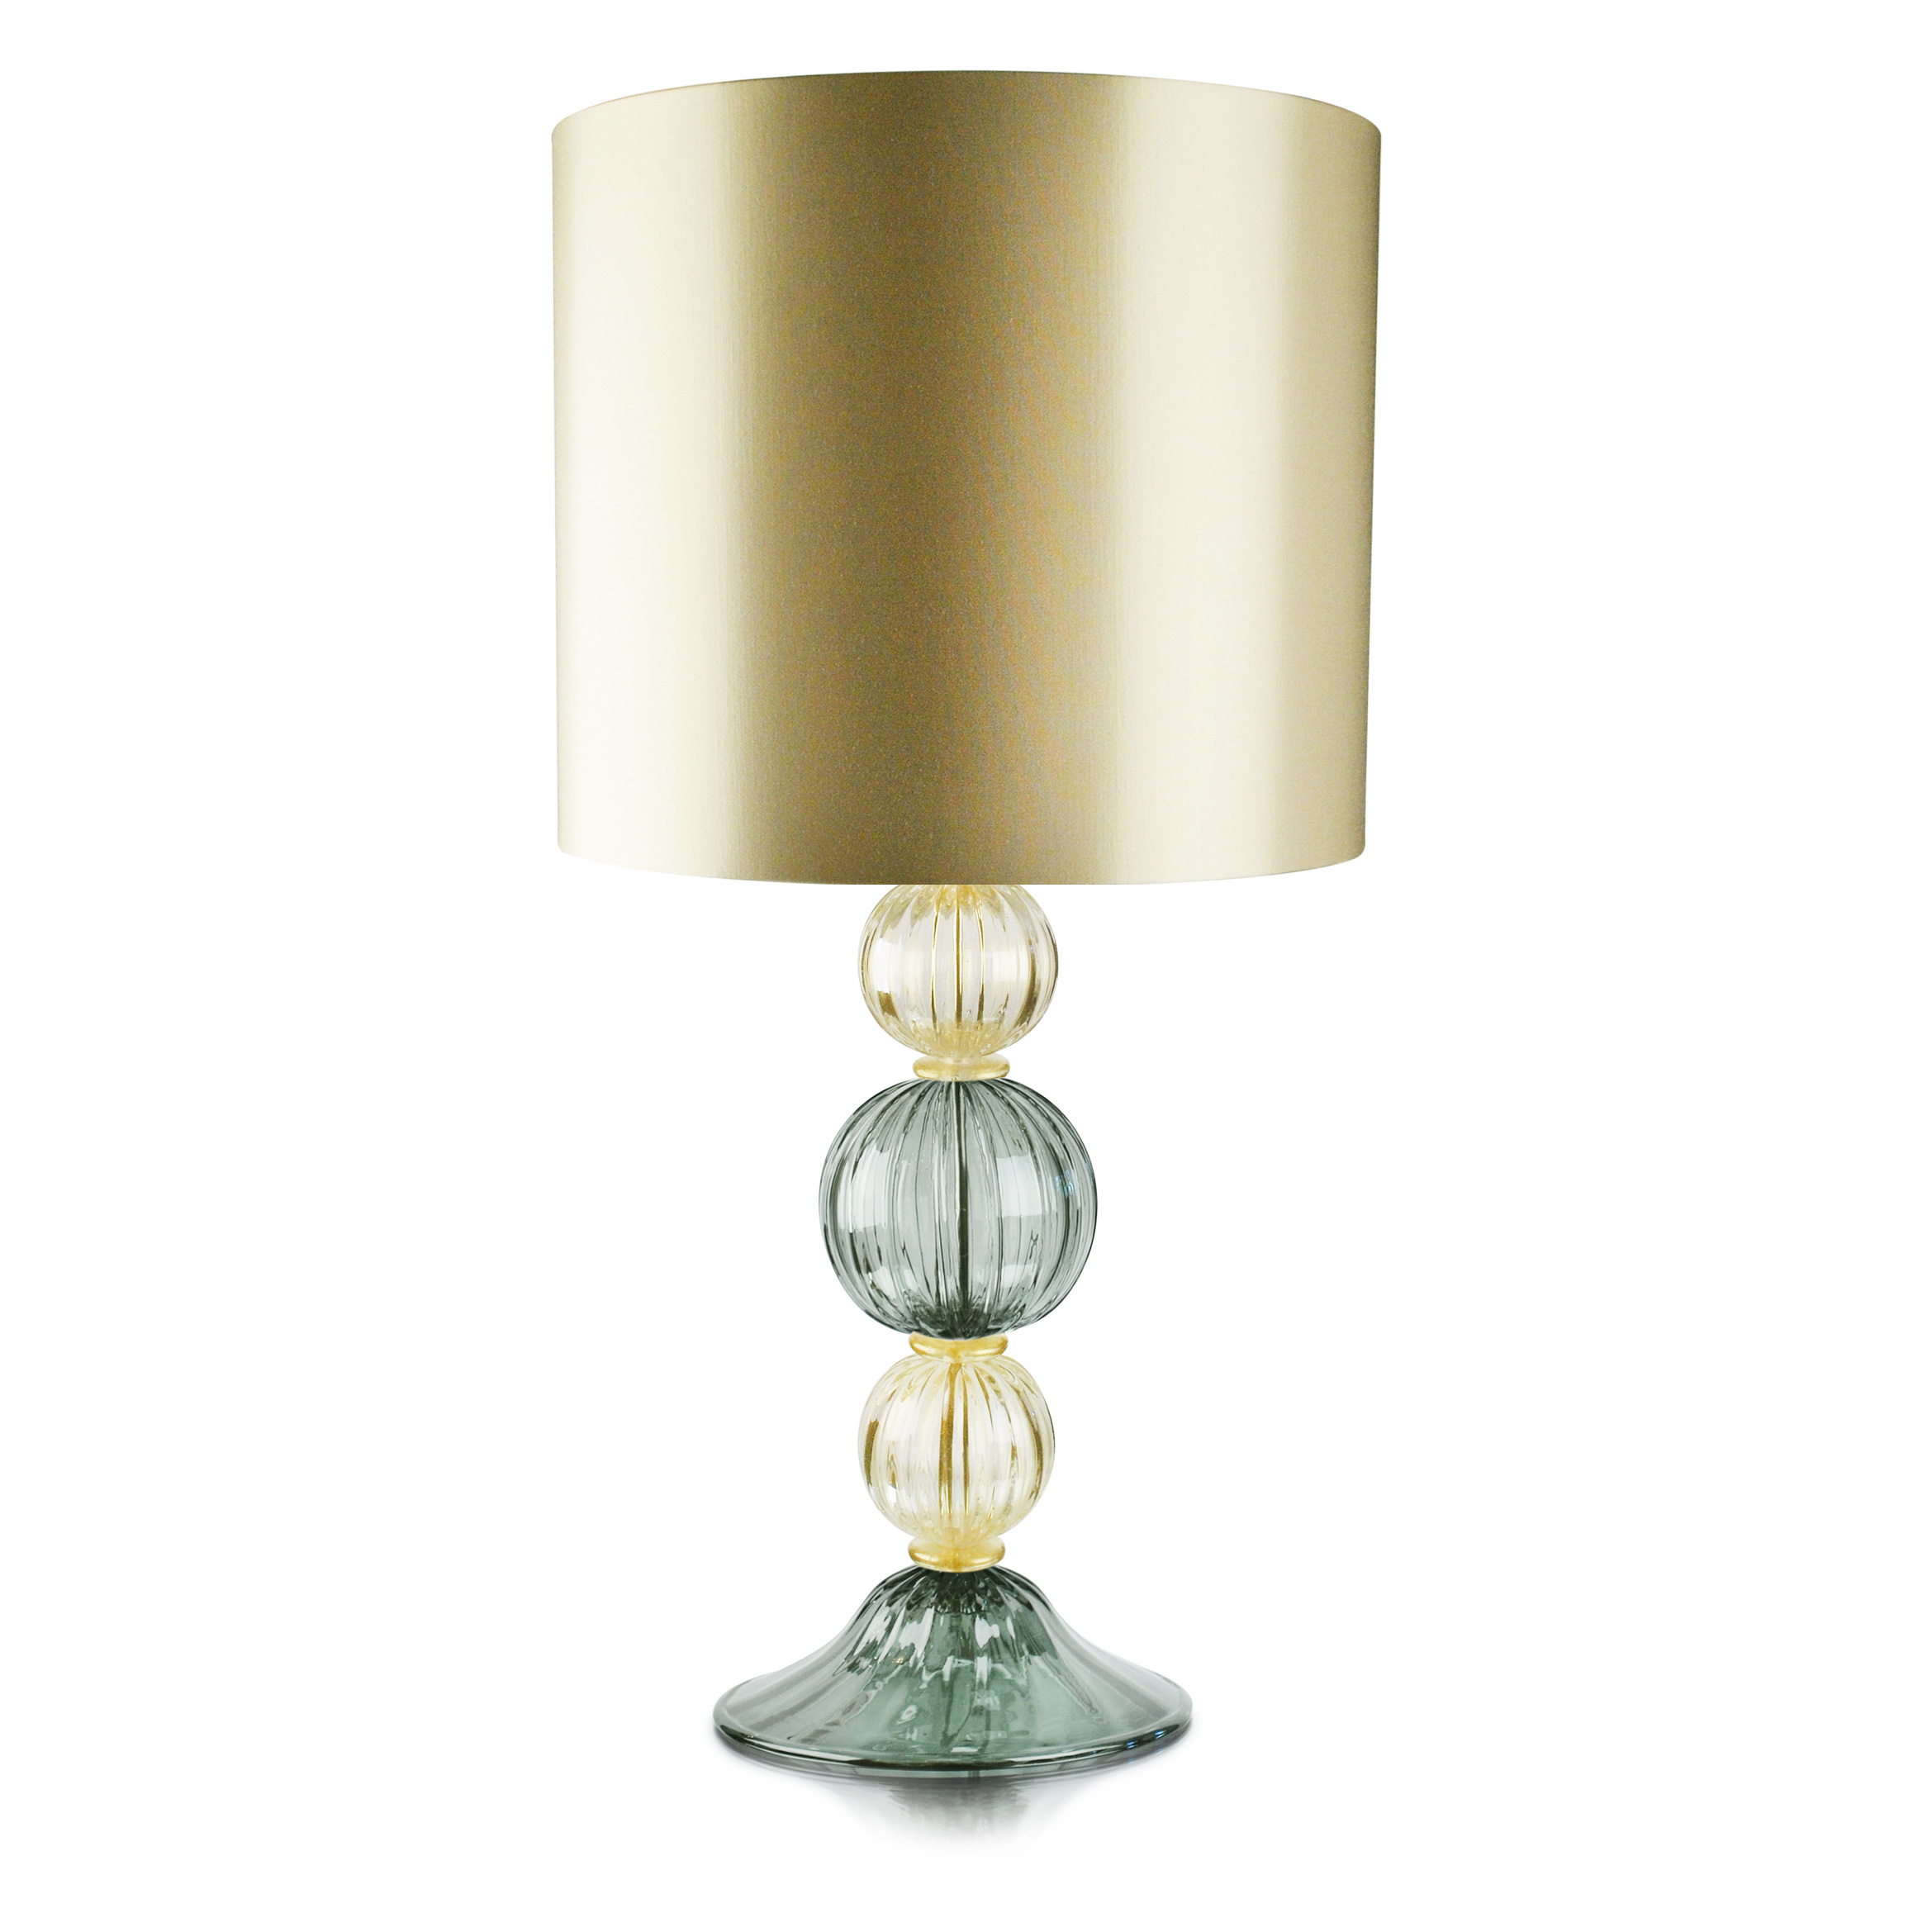 Joya villaverde london villaverde london joya murano table lamp square01 aloadofball Gallery